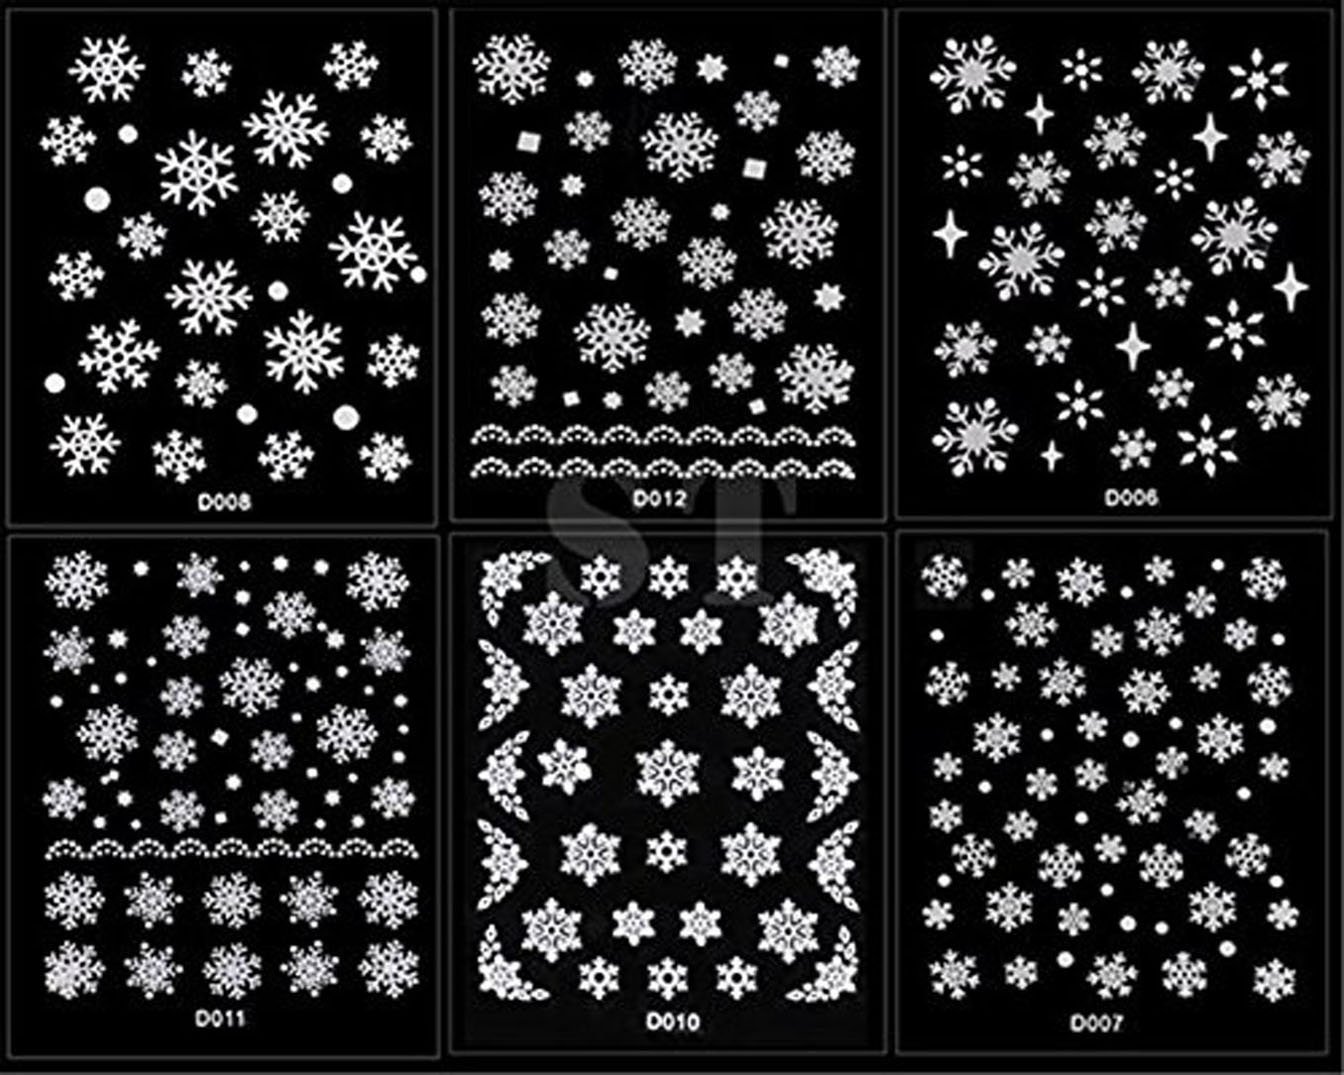 NiceButy 12 Sheet Christmas Snowflakes Design 3D Nail Art Stickers Decals